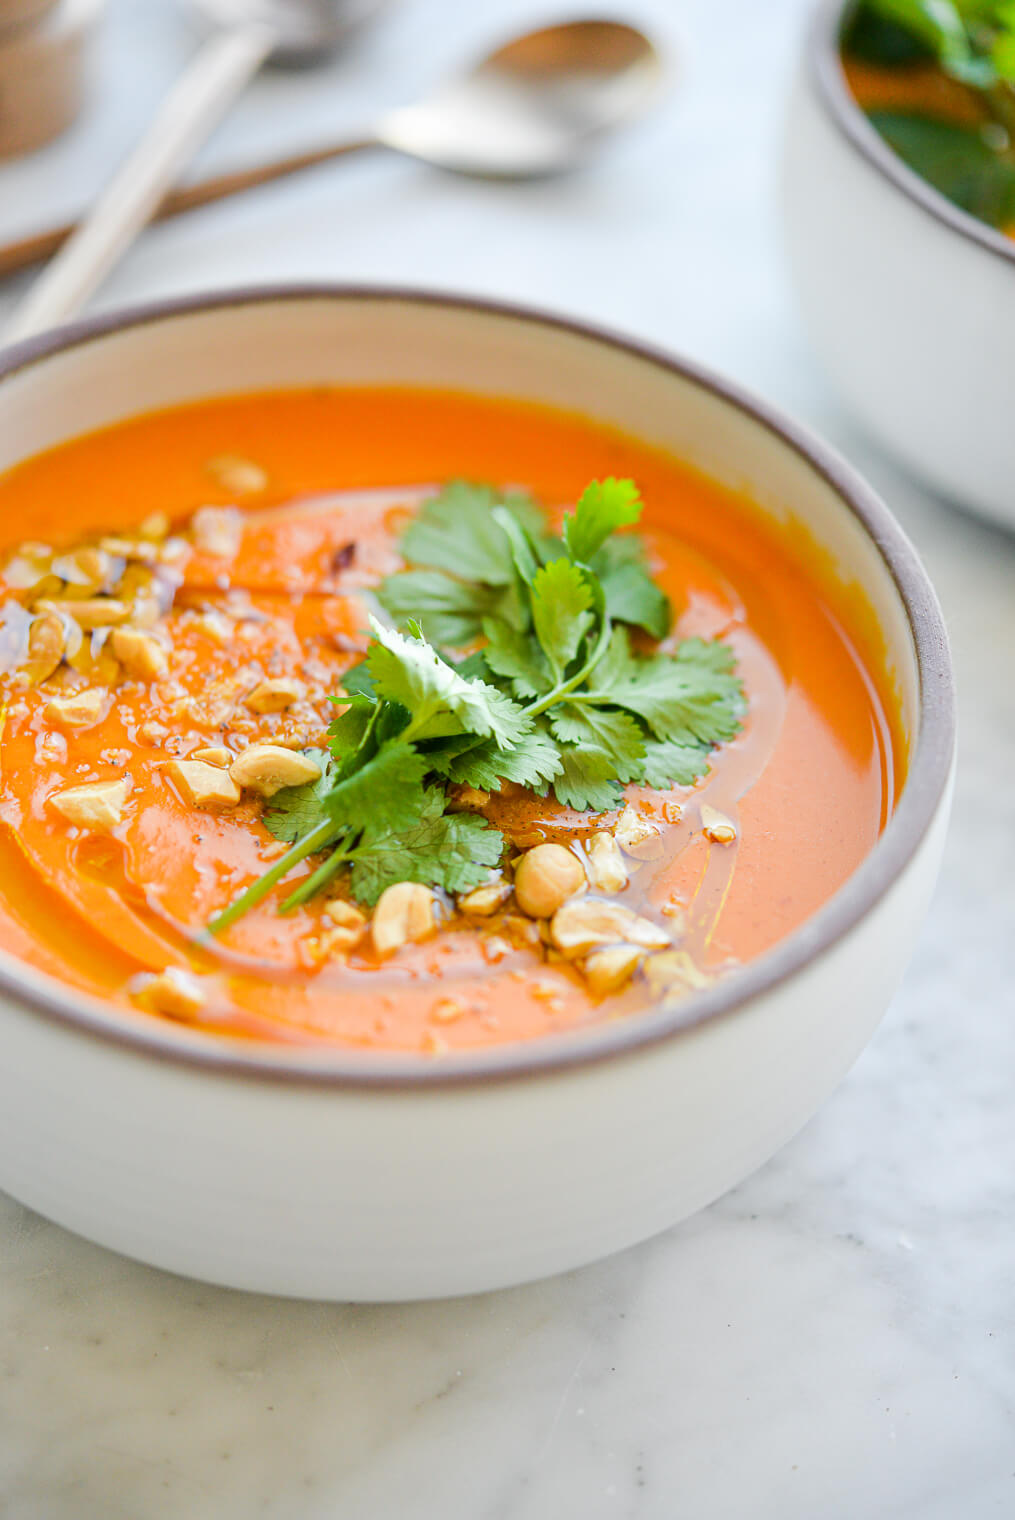 a bowl of bright orange thai carrot soup garnished with fresh cilantro and crushed peanuts sitting on a marble surface